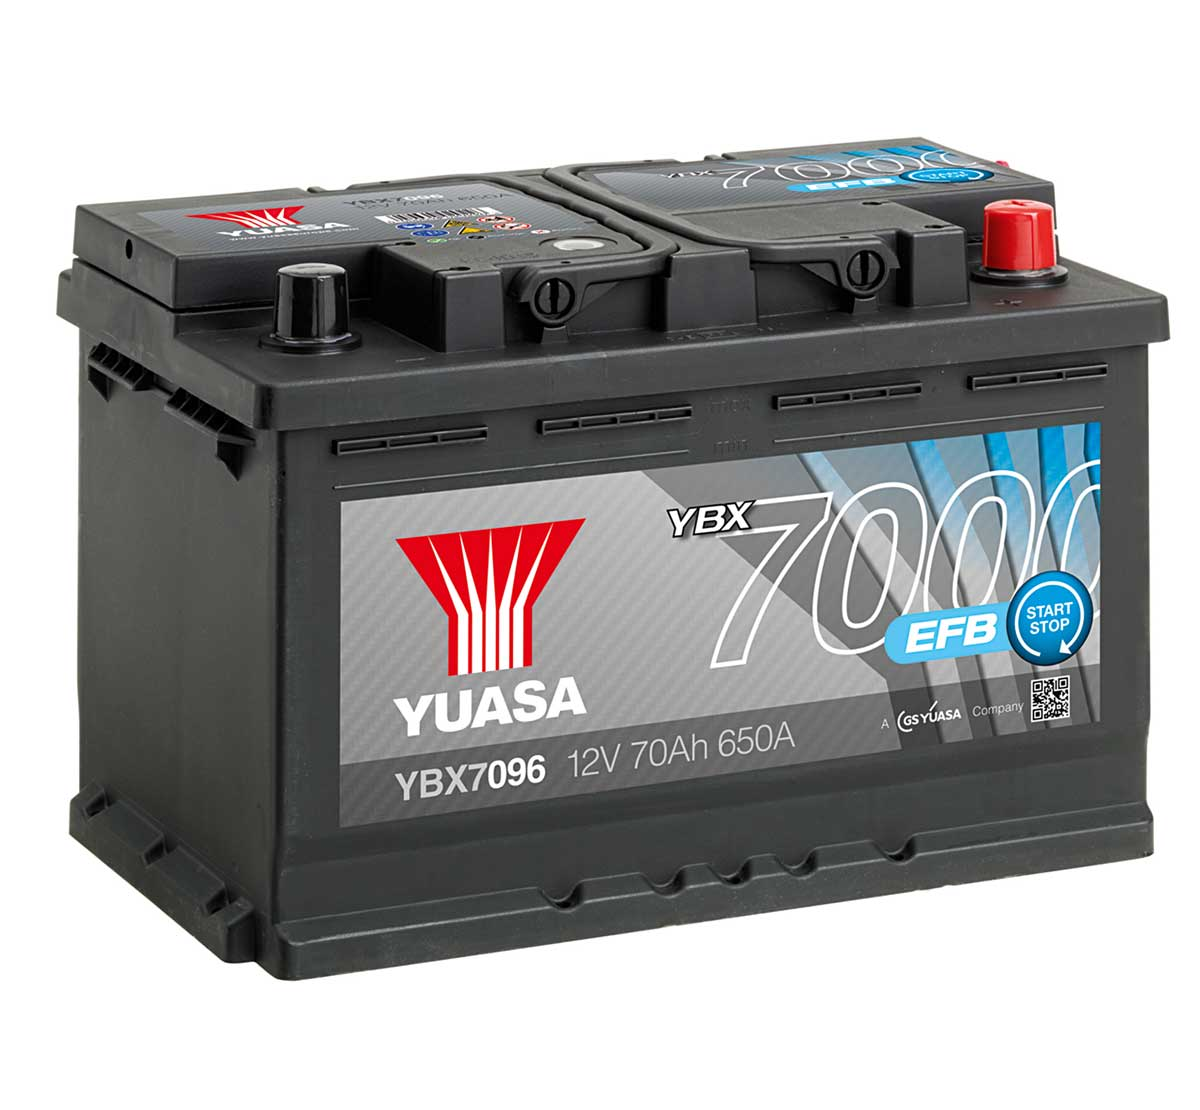 yuasa ybx7096 efb high performance 12v car battery mds. Black Bedroom Furniture Sets. Home Design Ideas